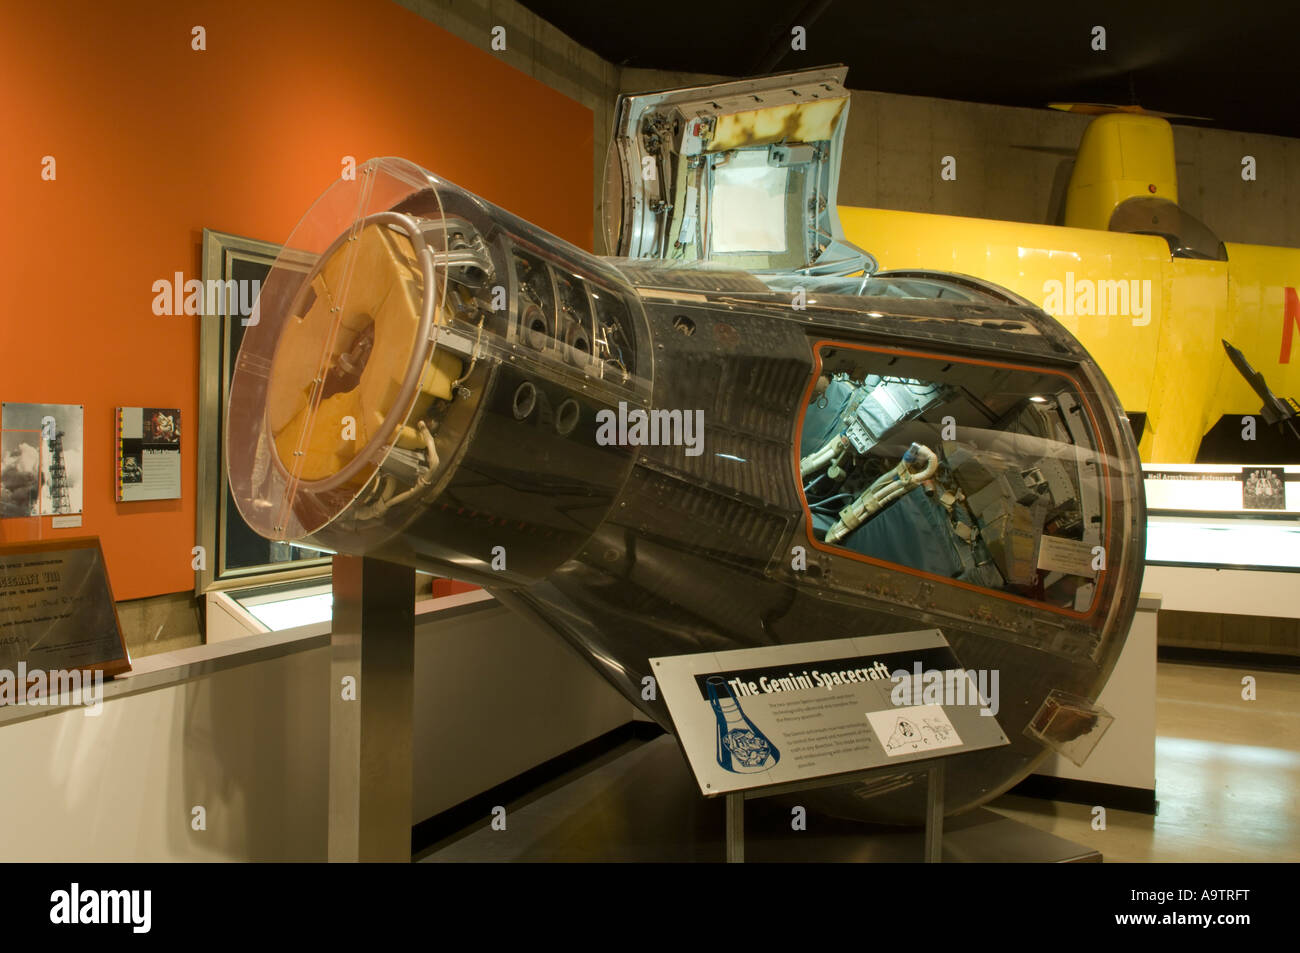 677f9948ed Gemini 8 space capsule on display at the Neil Armstrong Air and Space  Museum in Wapakoneta